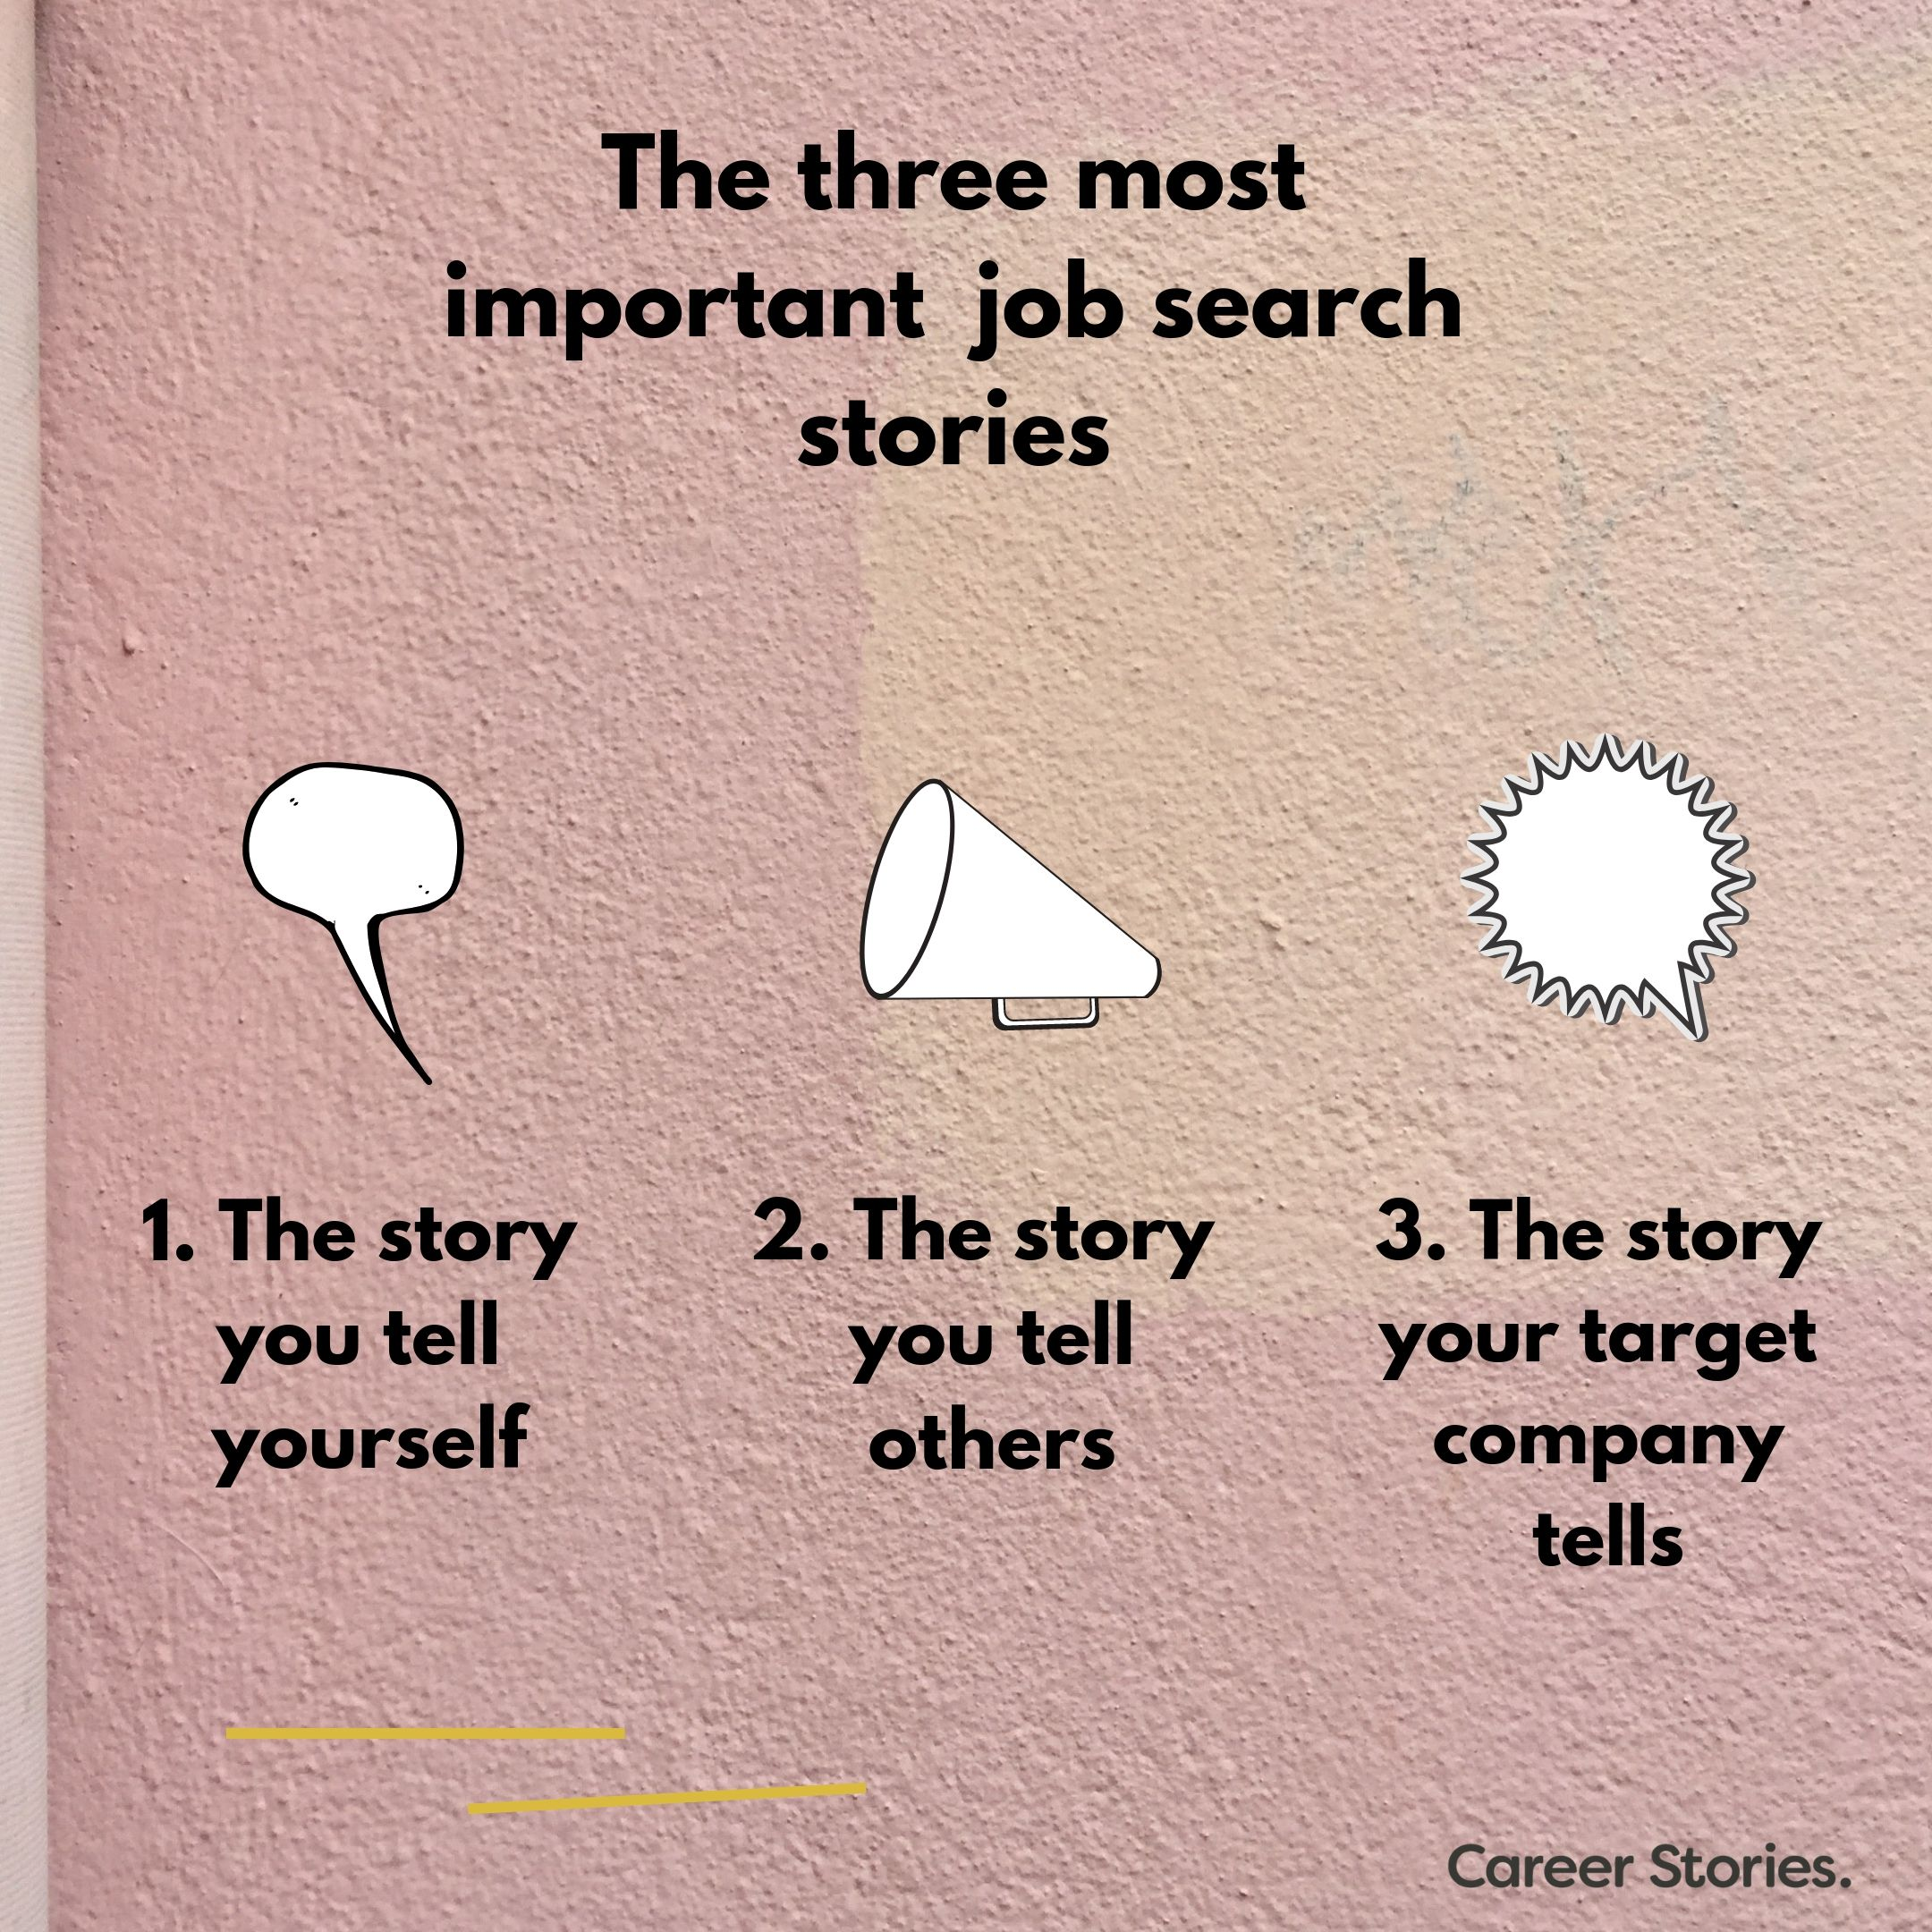 Career Stories - About